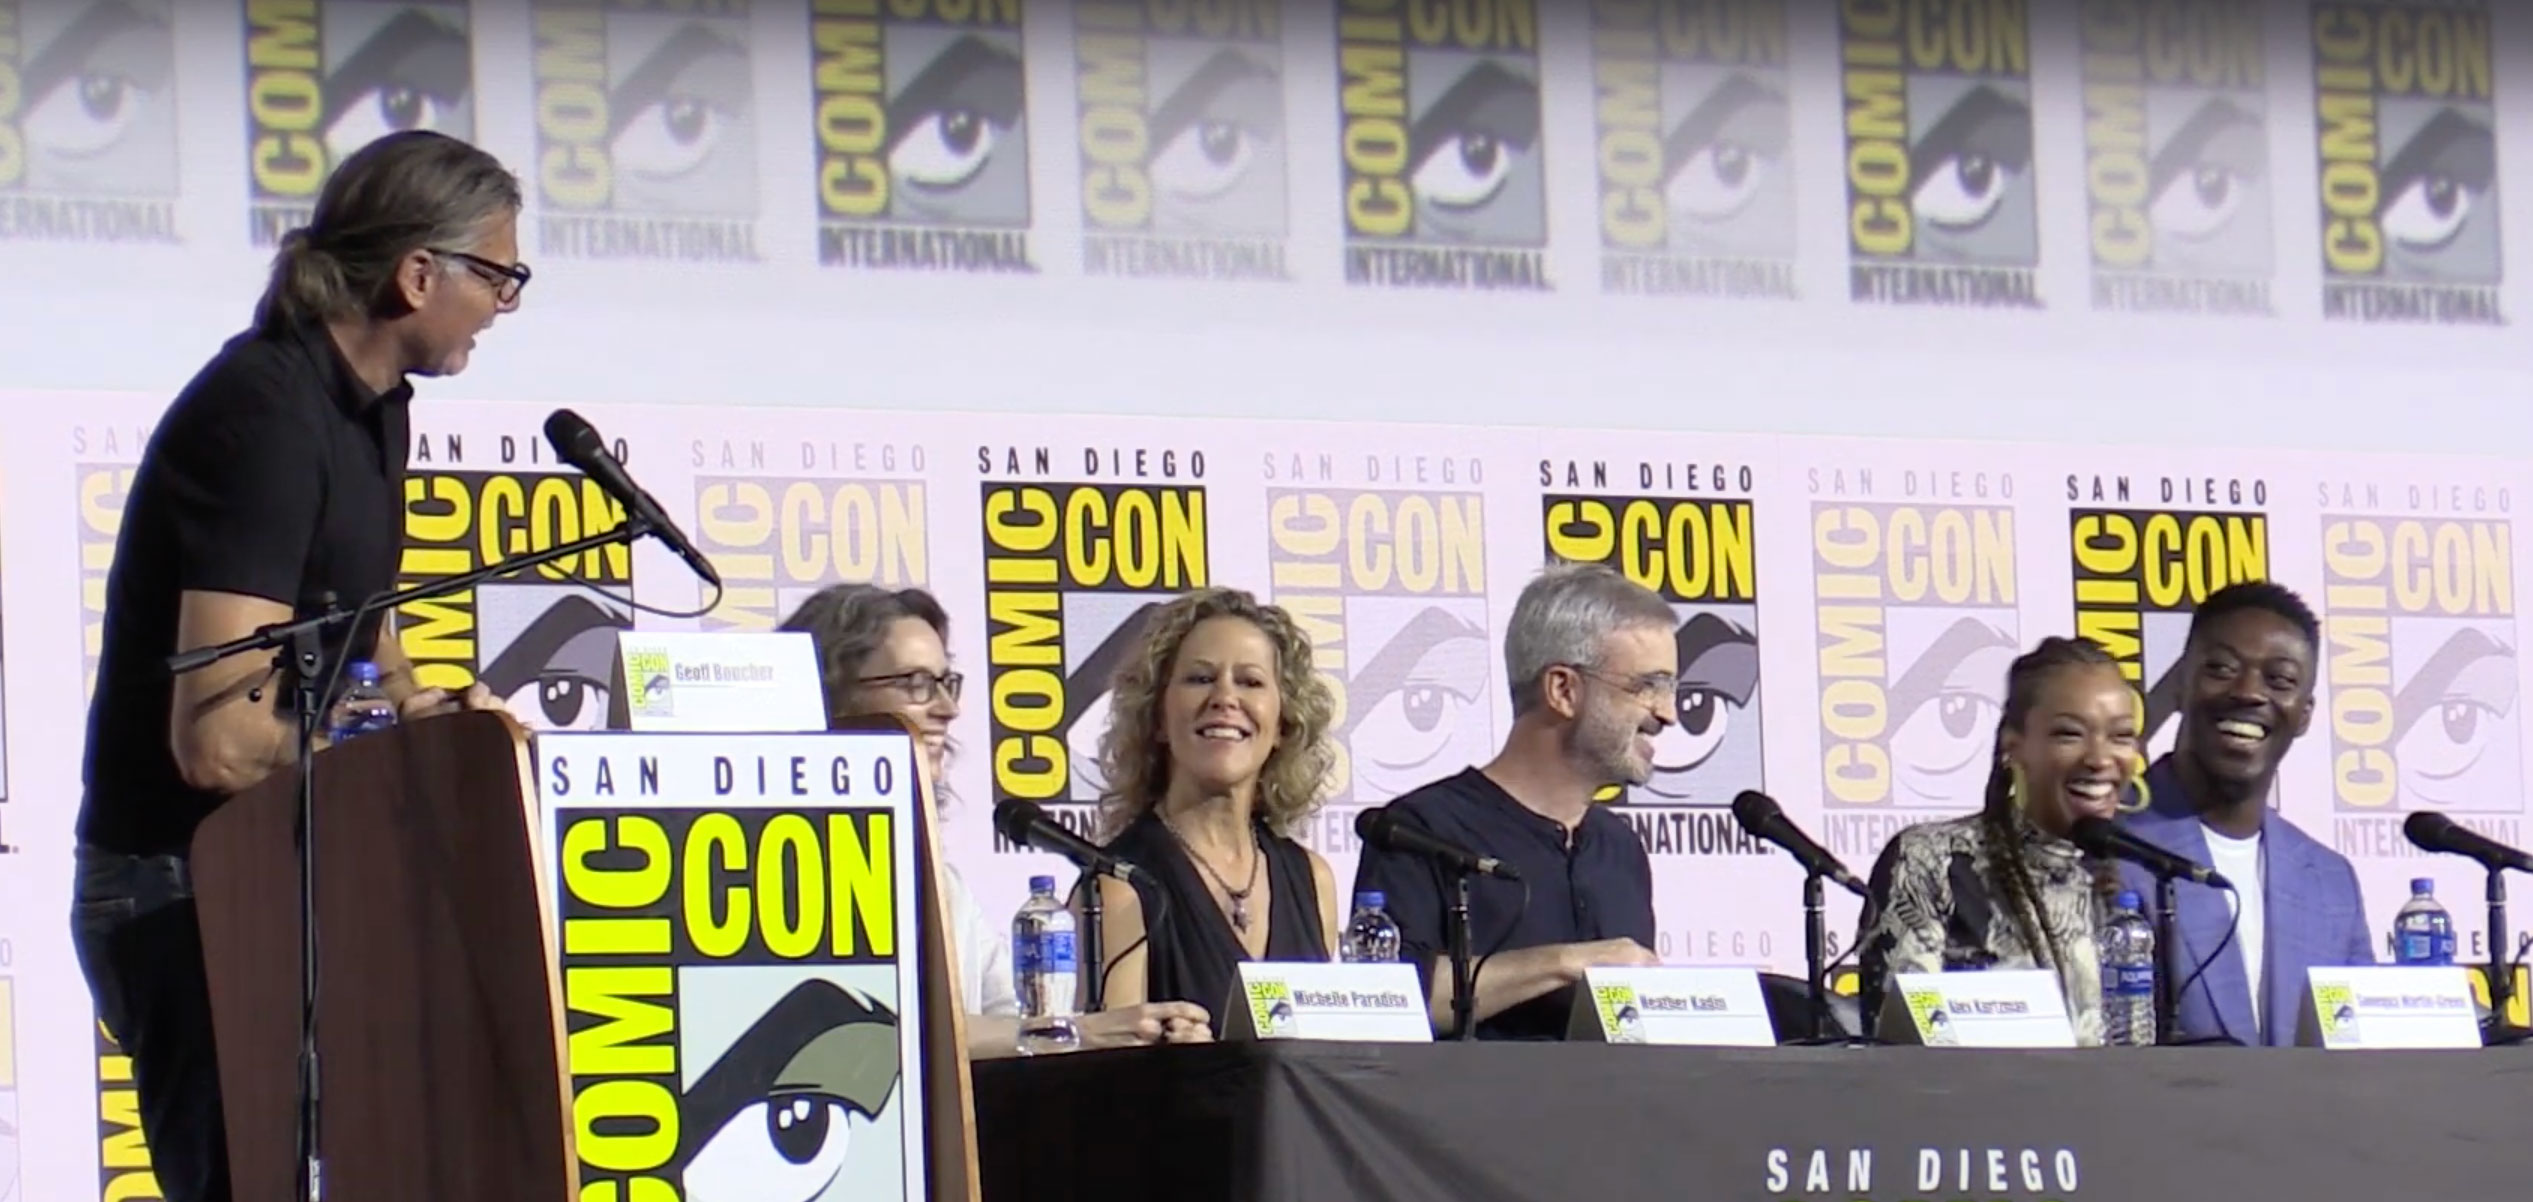 Moderator Geoff Boucher with Heather Kadin, Alex Kurtzman, Sonequa Martin-Green, David Ajala